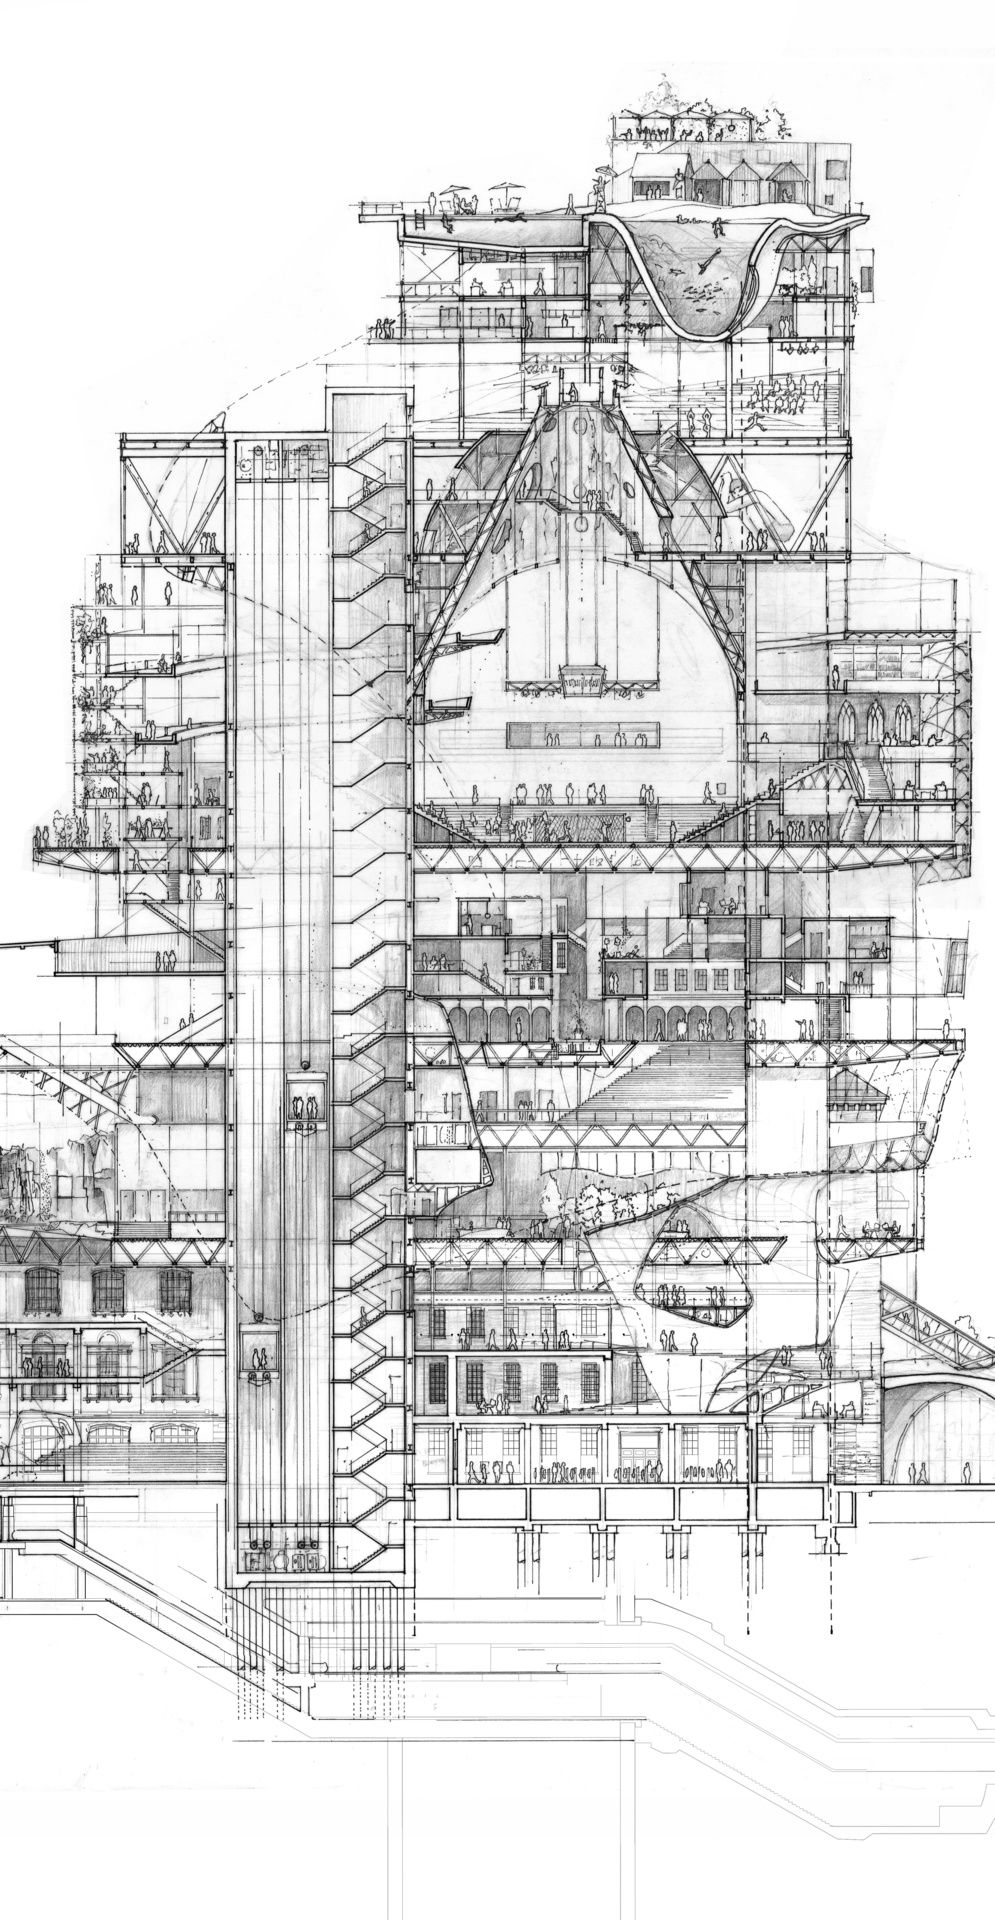 architectural hand drawings. Architectural-review: This Hand-drawn Section Was Made By Student Stuart Franks To Architectural Hand Drawings N